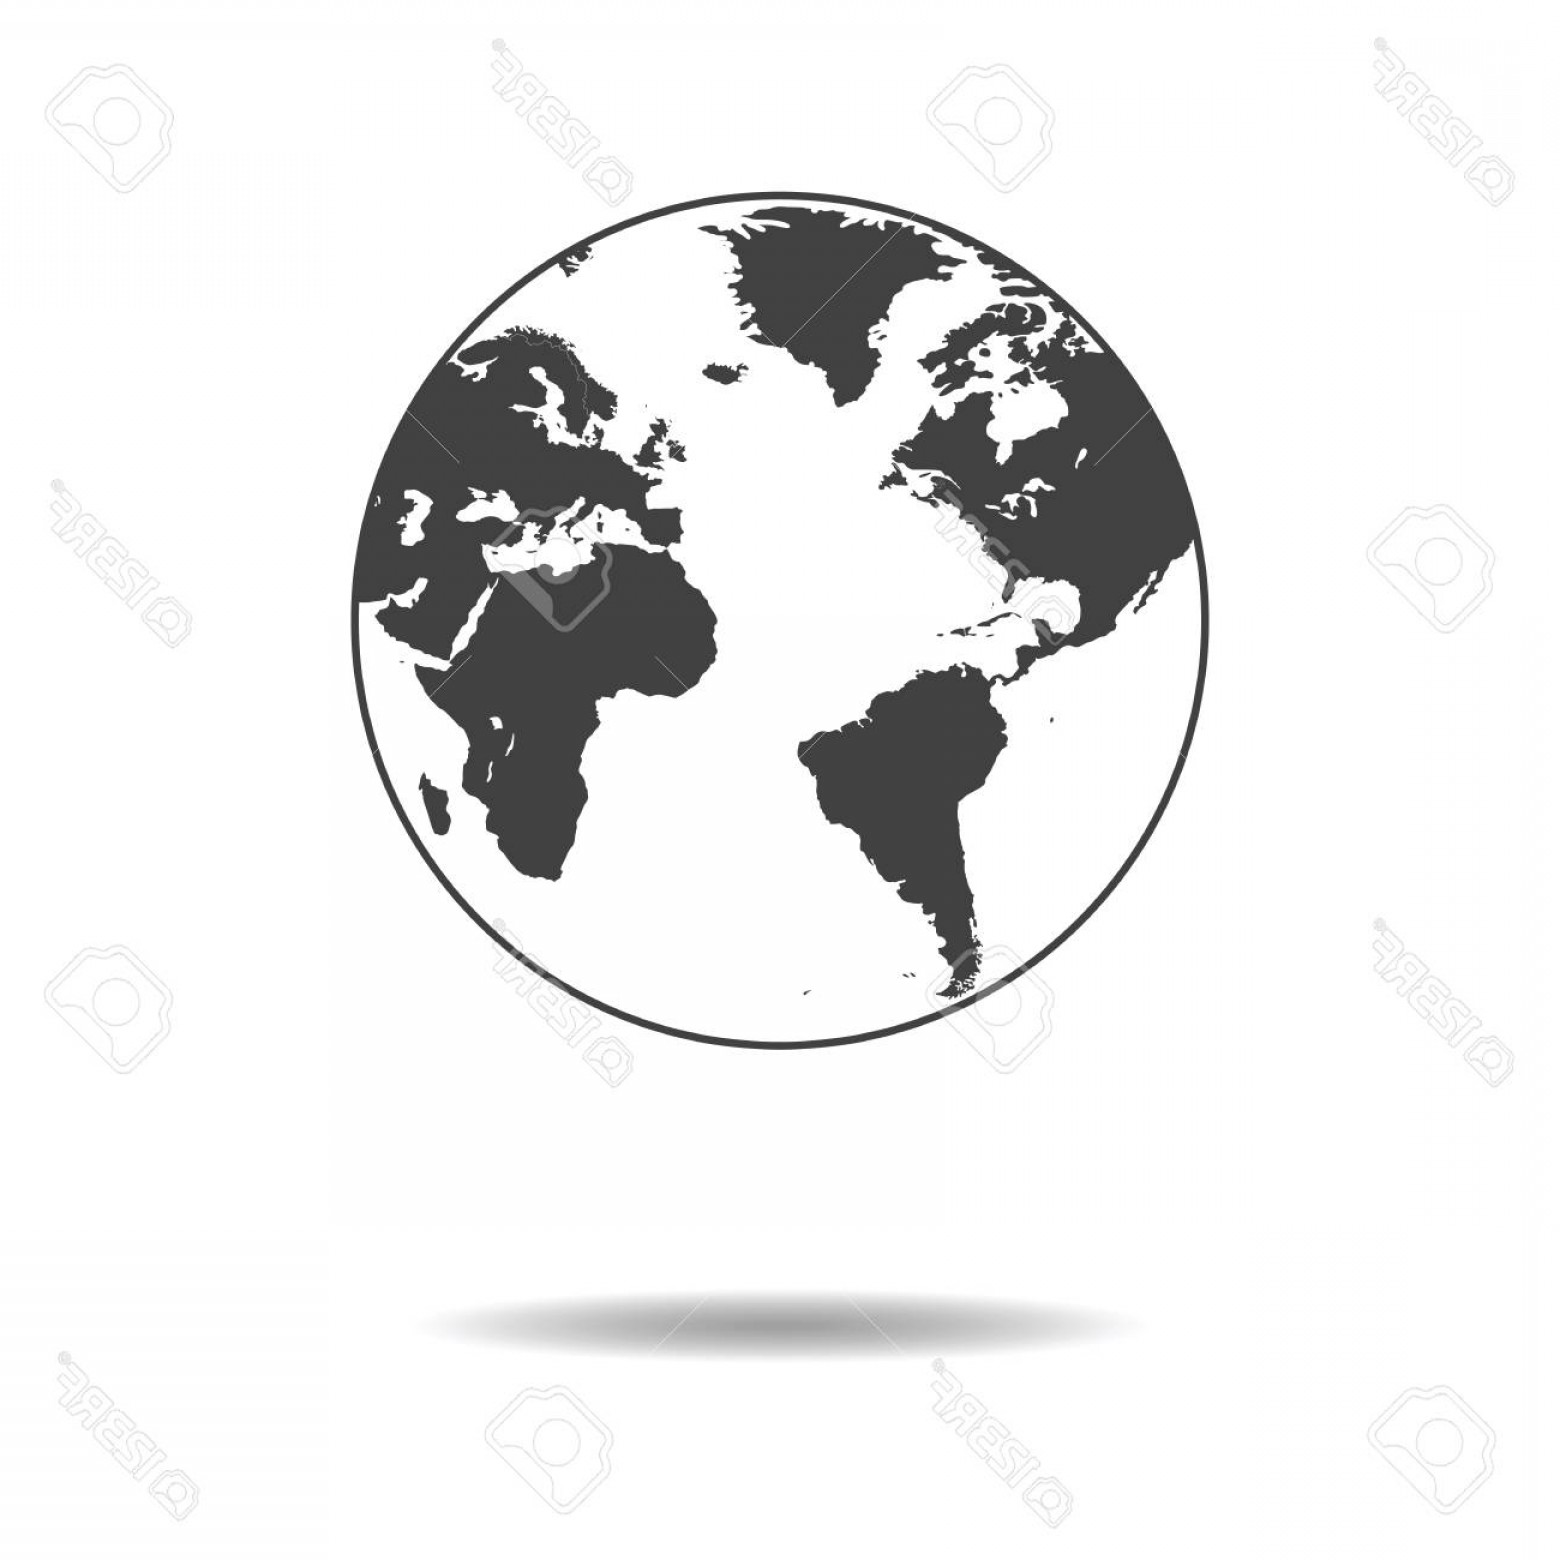 World Icon Vector Simple: Photostock Vector World Icon Simple Flat Design Of Globe Isolated On White Background Vector